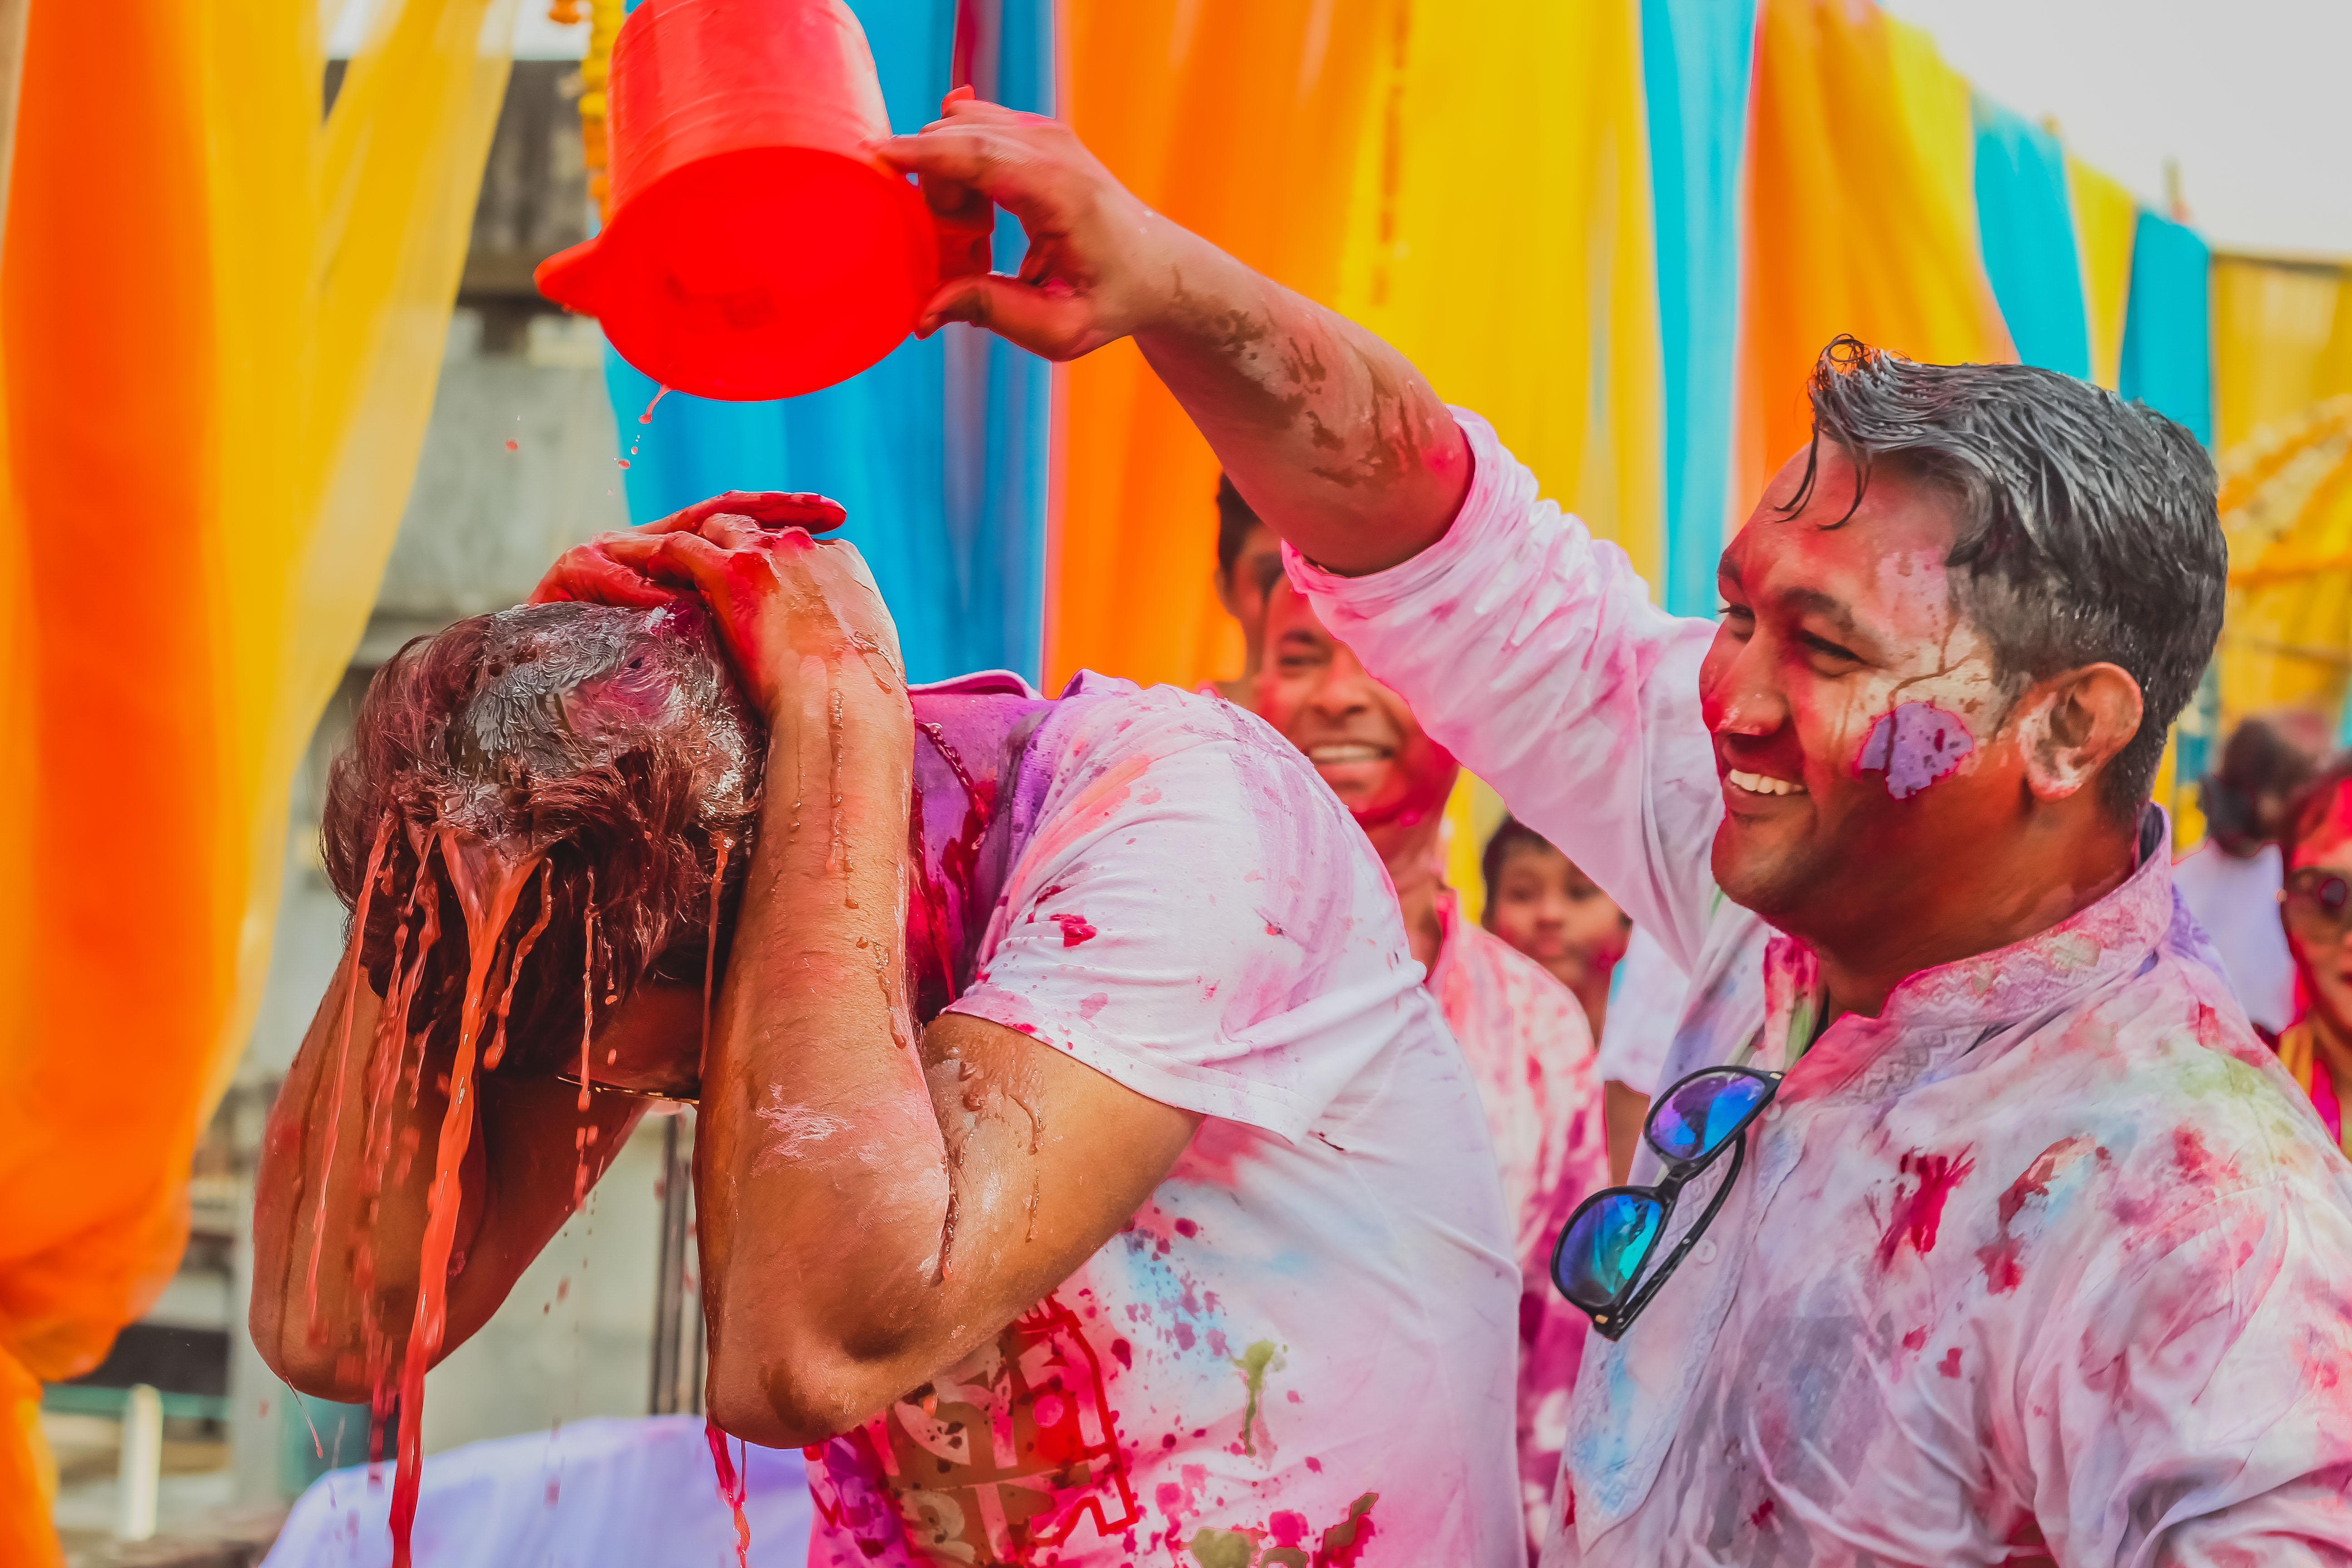 Man Pouring Colored Liquid to Another Man